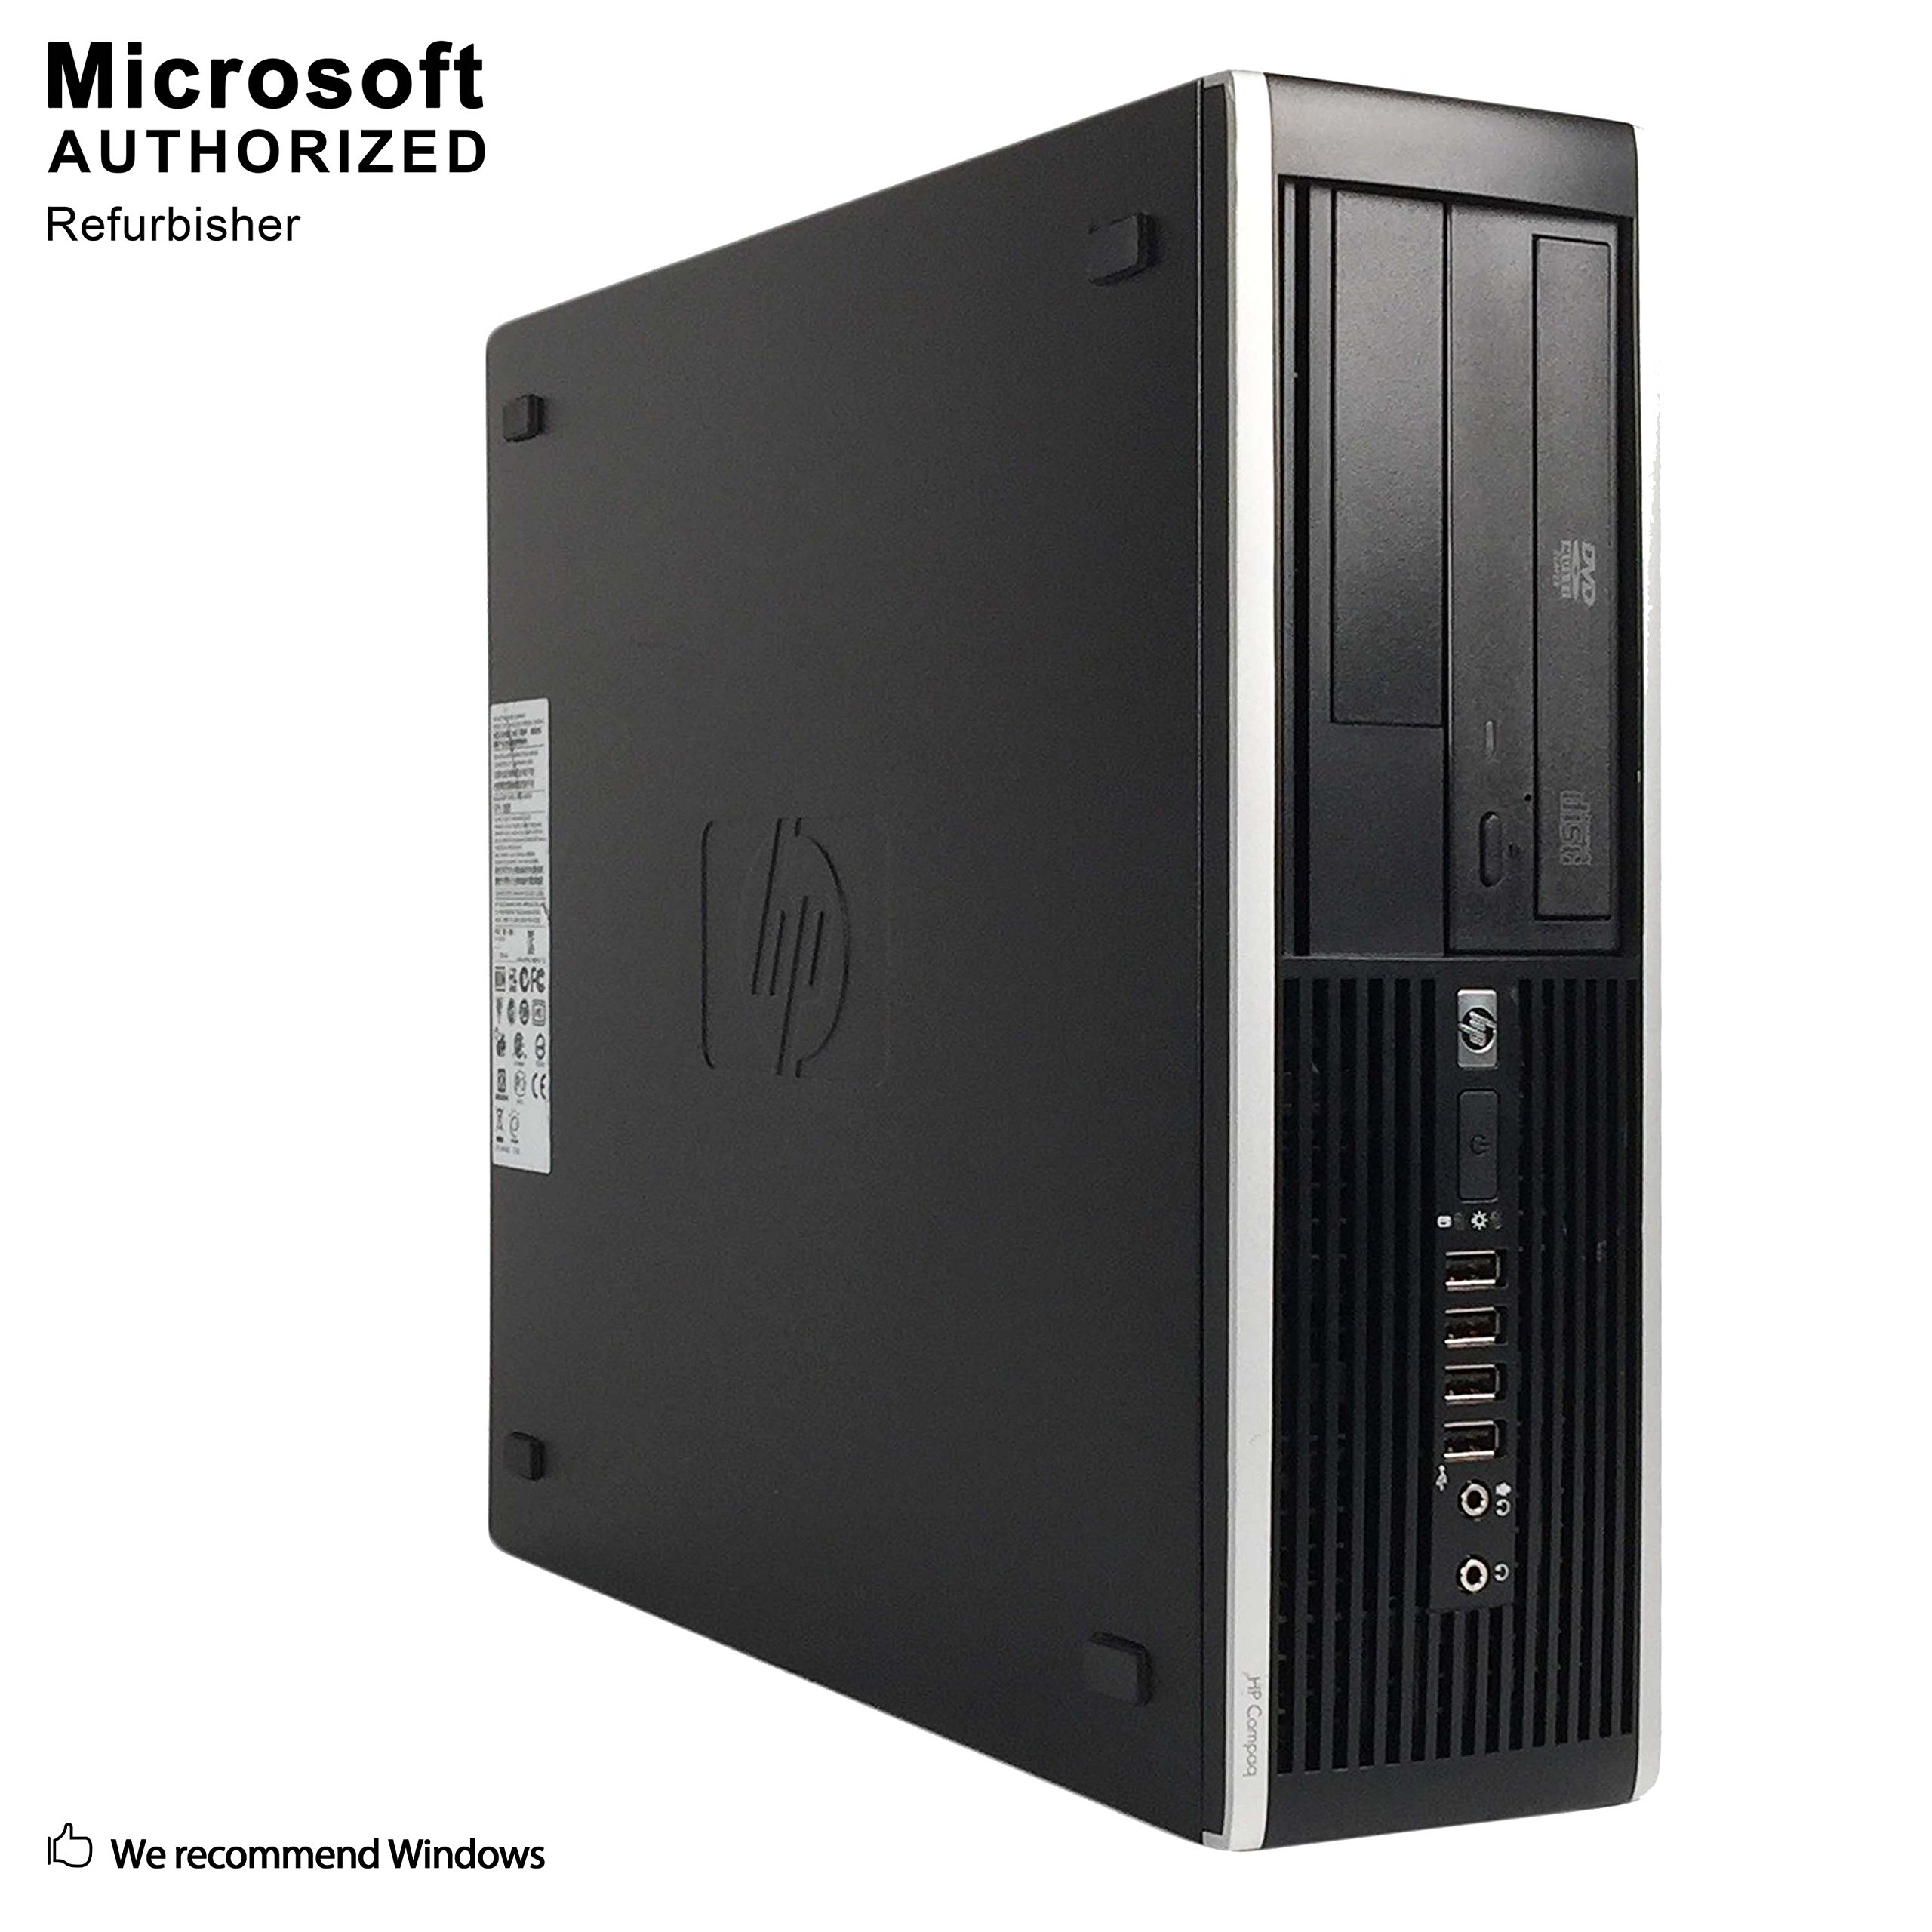 HP 6300 Pro Small Form Factor Business Desktop Computer, Intel Quad Core i5-3470 3.2GHz Processor , 8GB DDR3 RAM, 500GB HDD, DVD, USB 3.0, VGA, Windows 7 Professional (Certified Refurbishd)